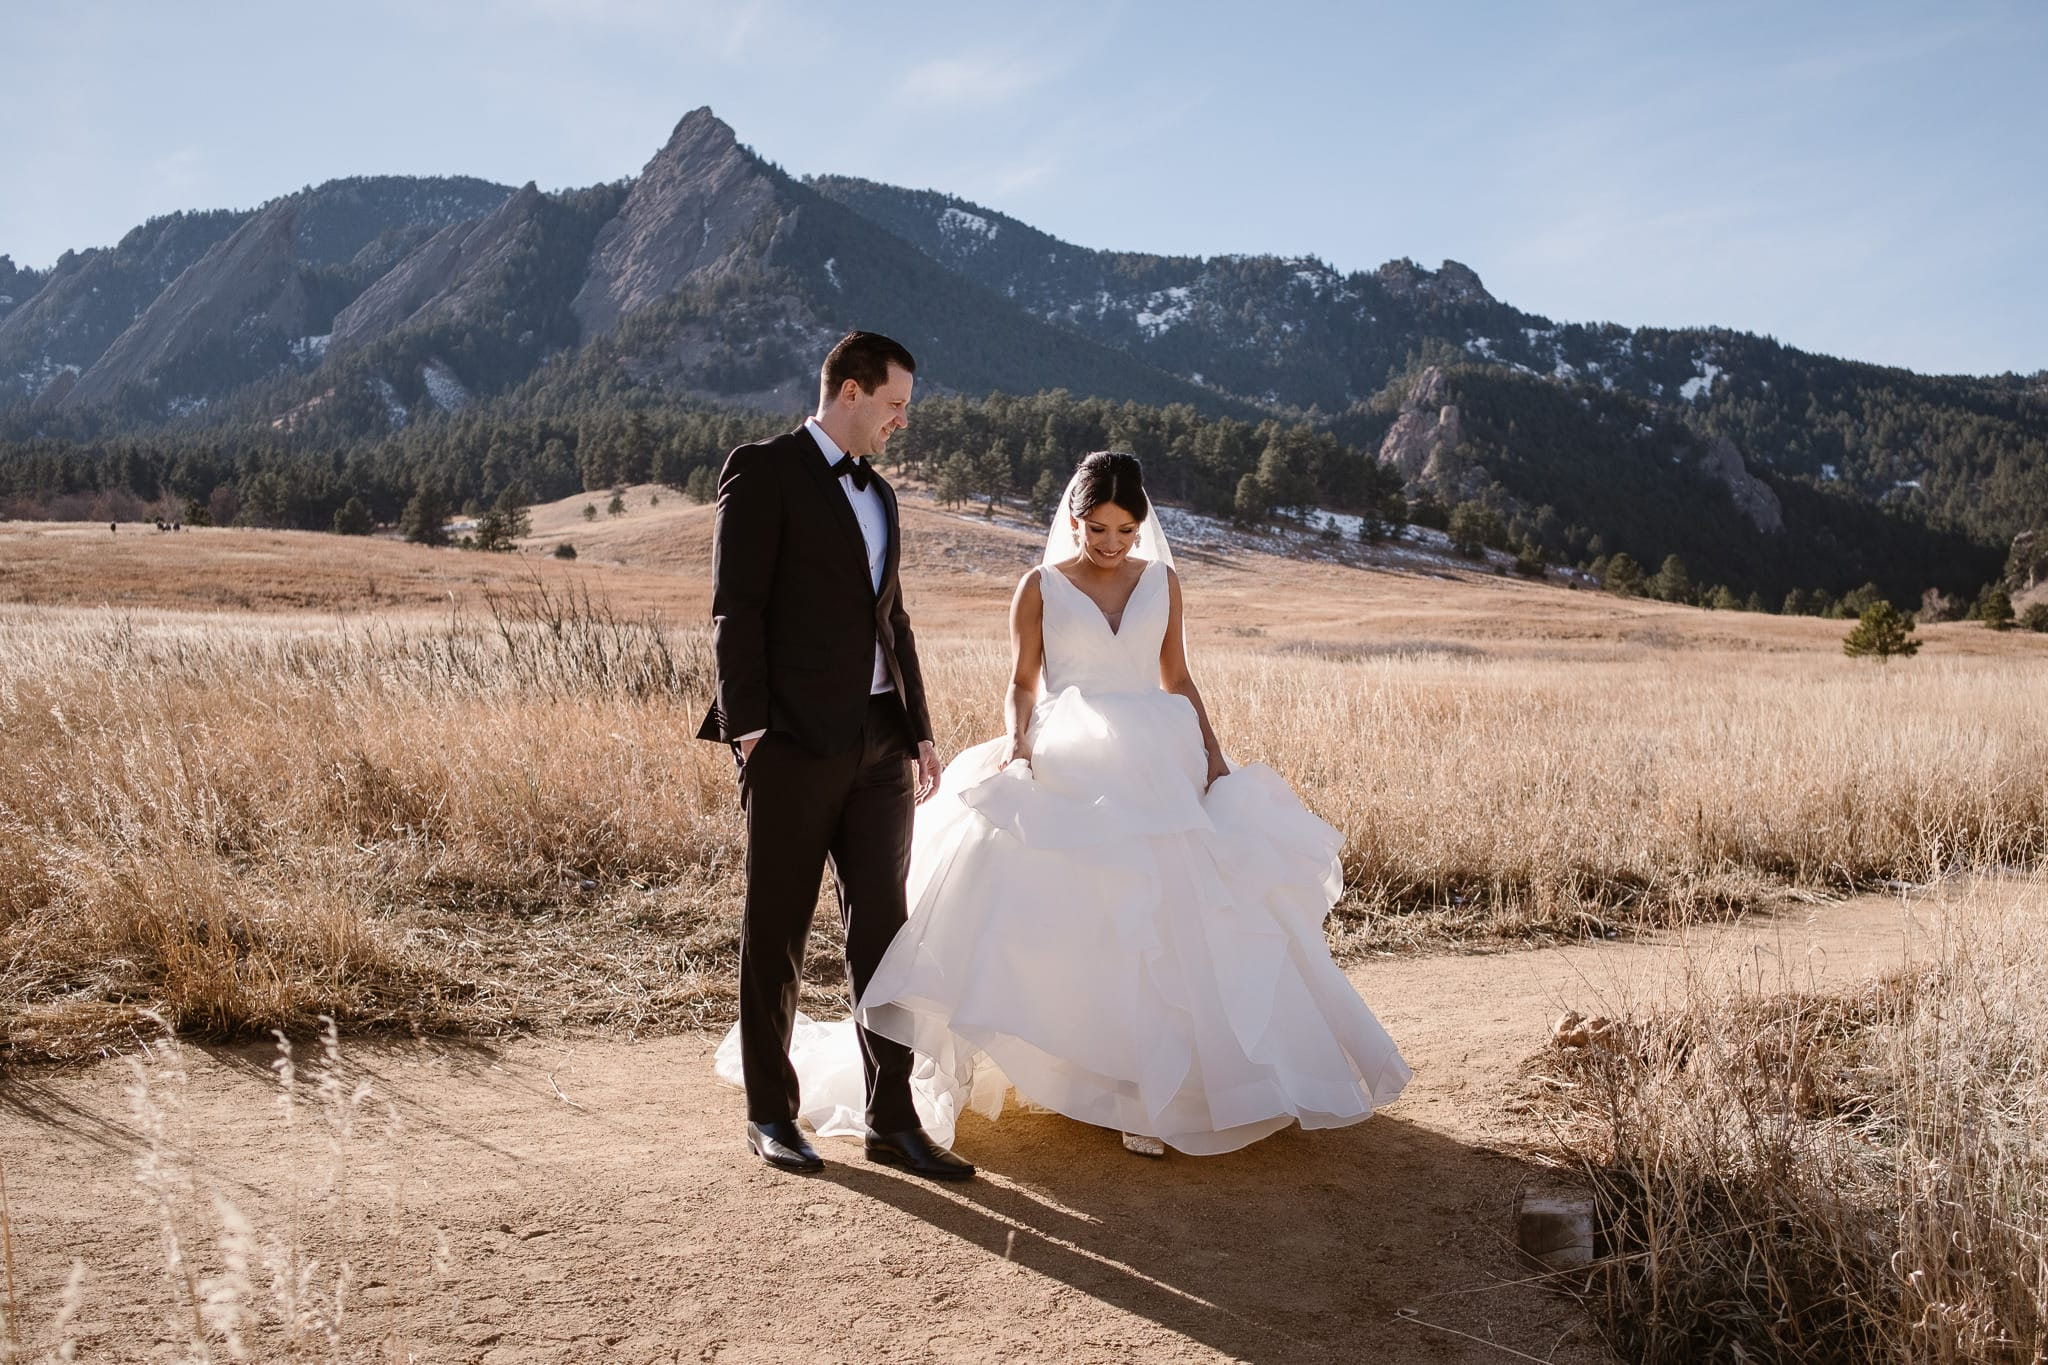 Bride and groom portraits at Chautauqua with views of the Flatirons, Boulder wedding photographer, Colorado wedding photographer, St Julien wedding with mountain wedding photos